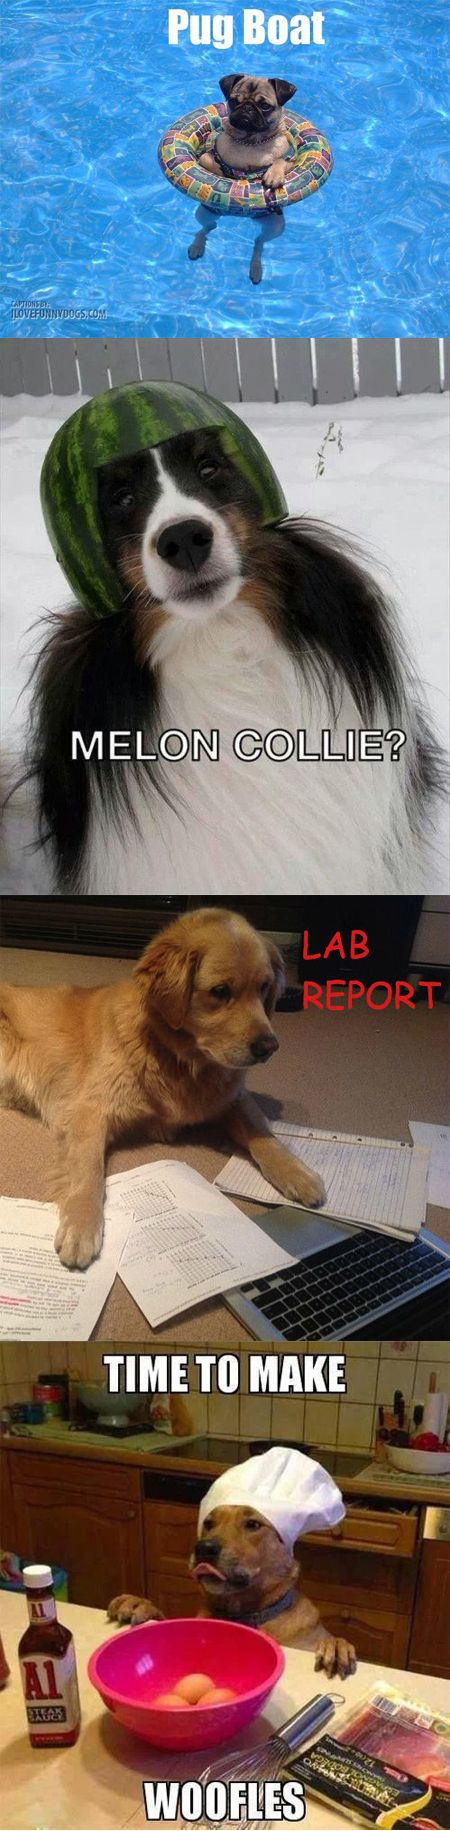 FUZZY CRITTERS: 14 Dog Puns That Are So Corny, They'll Give You A ...